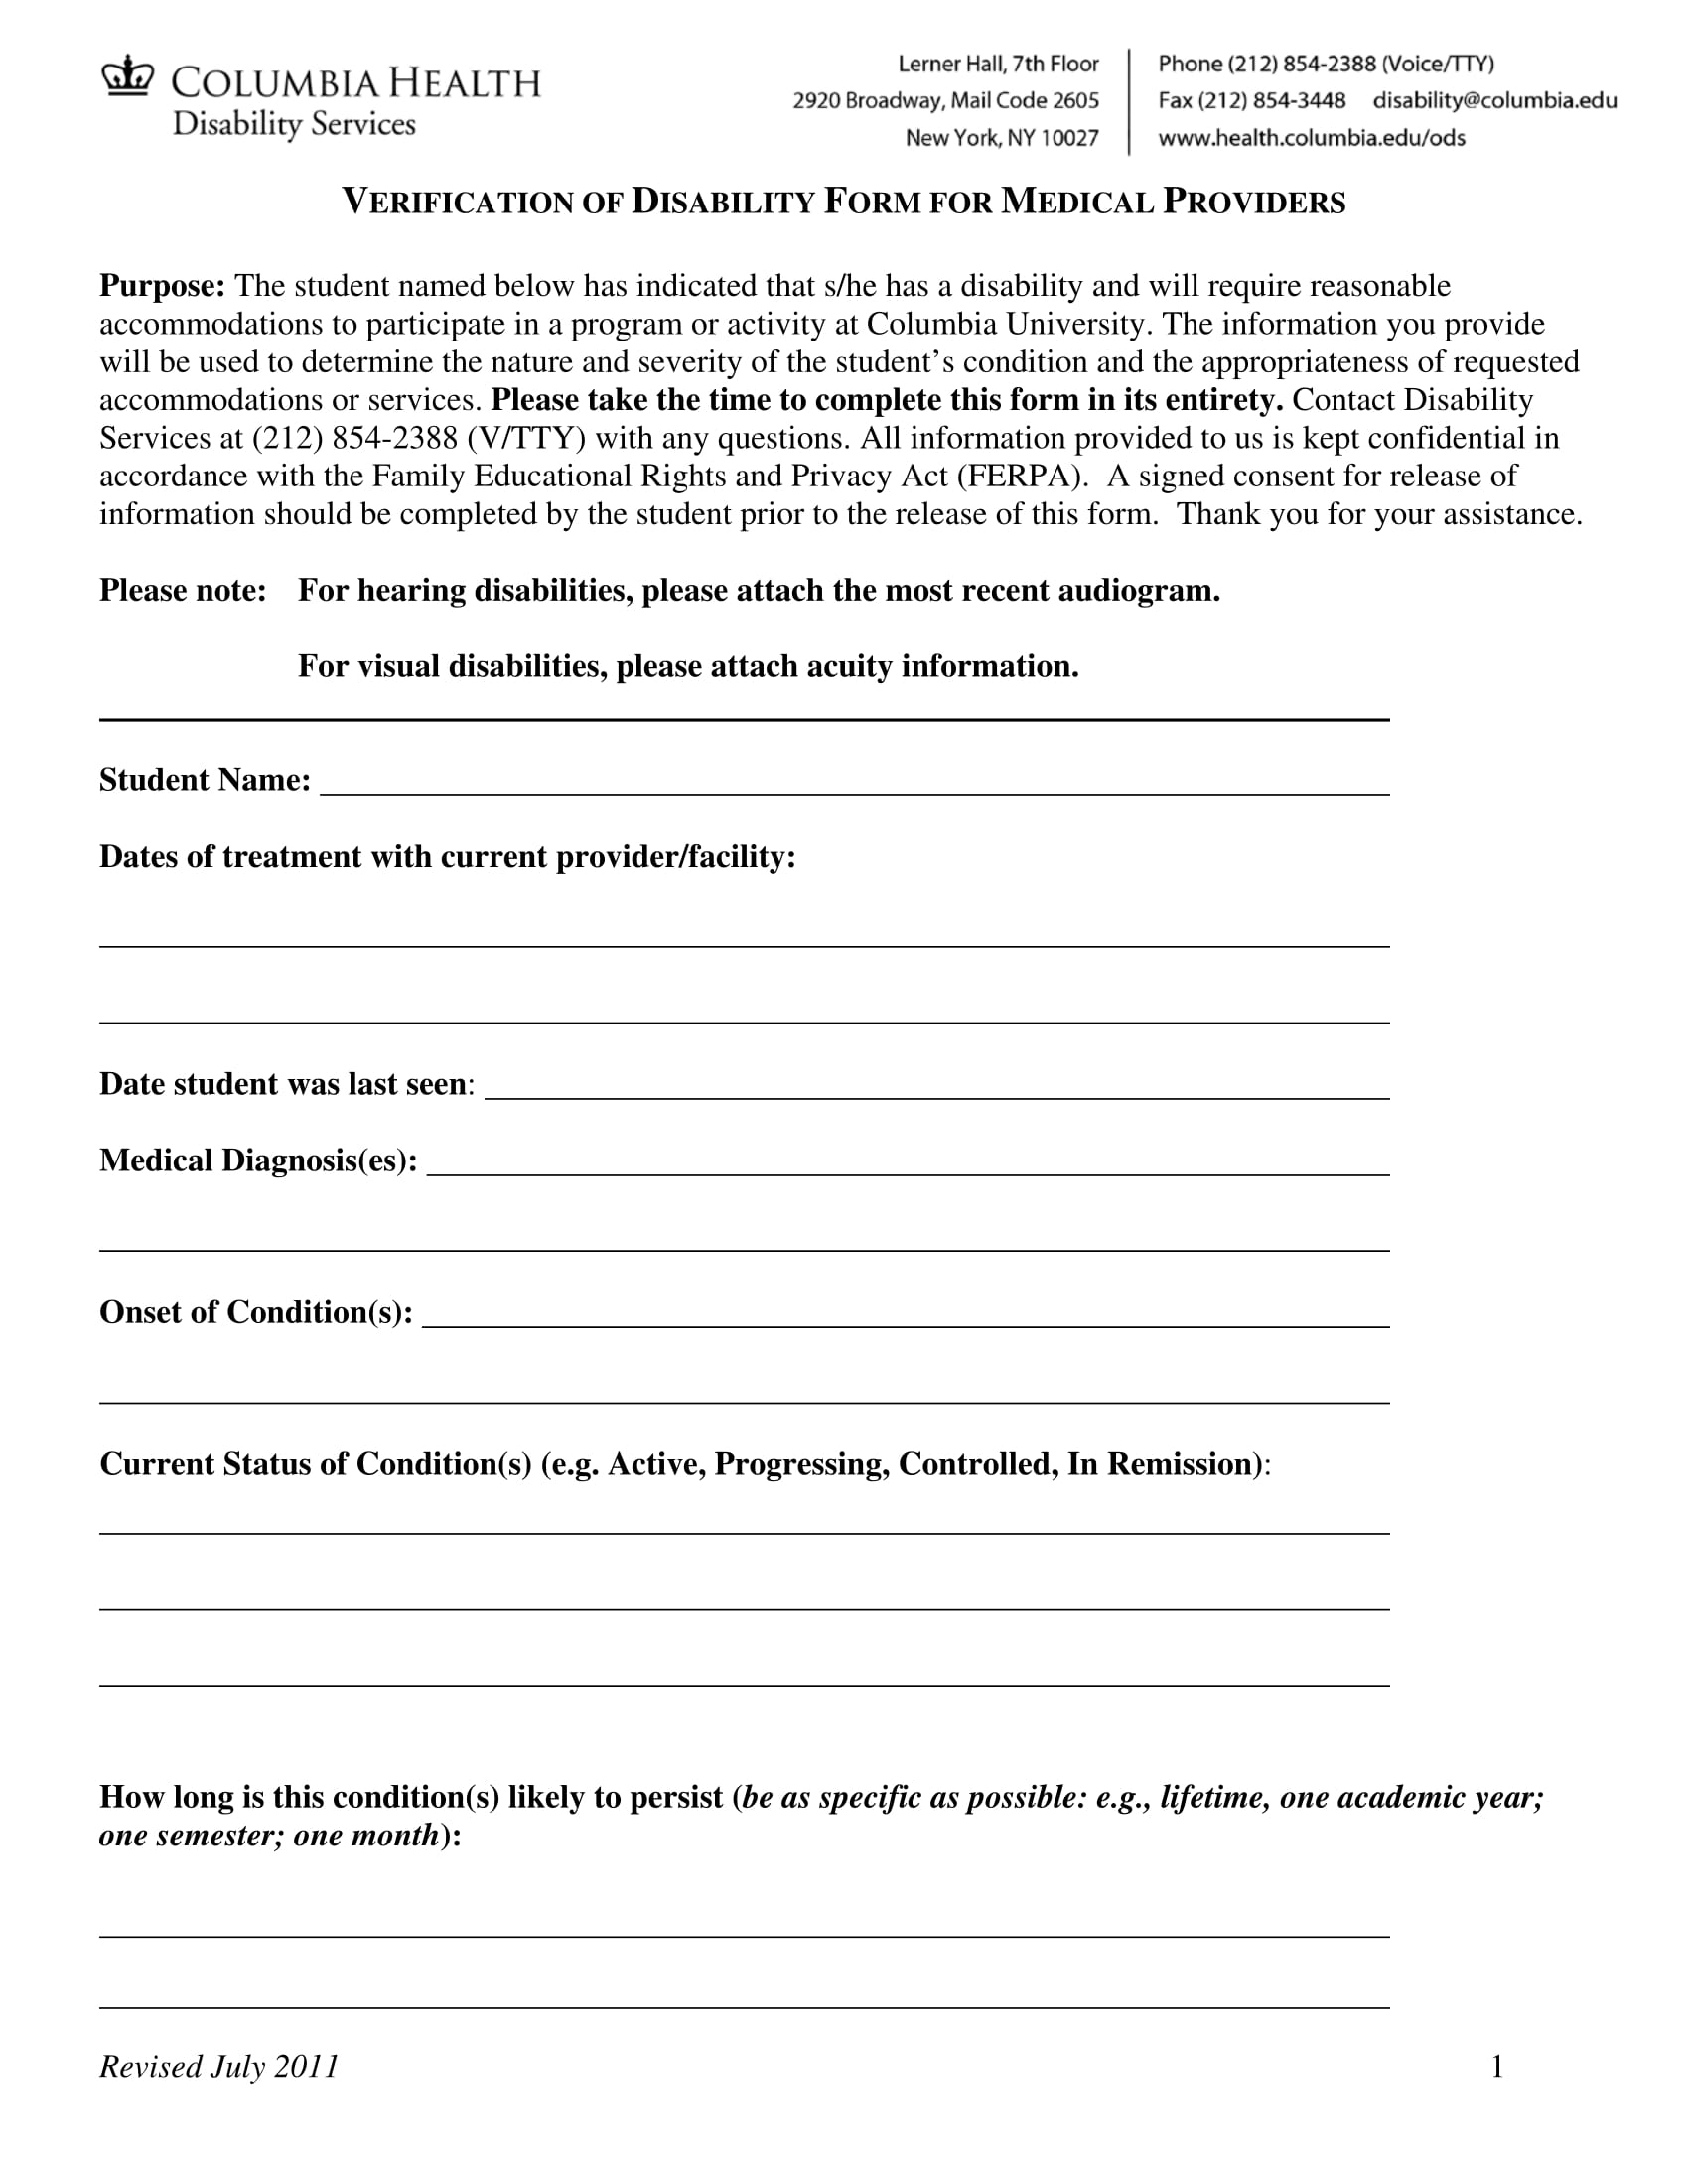 medical providers disability verification form 1